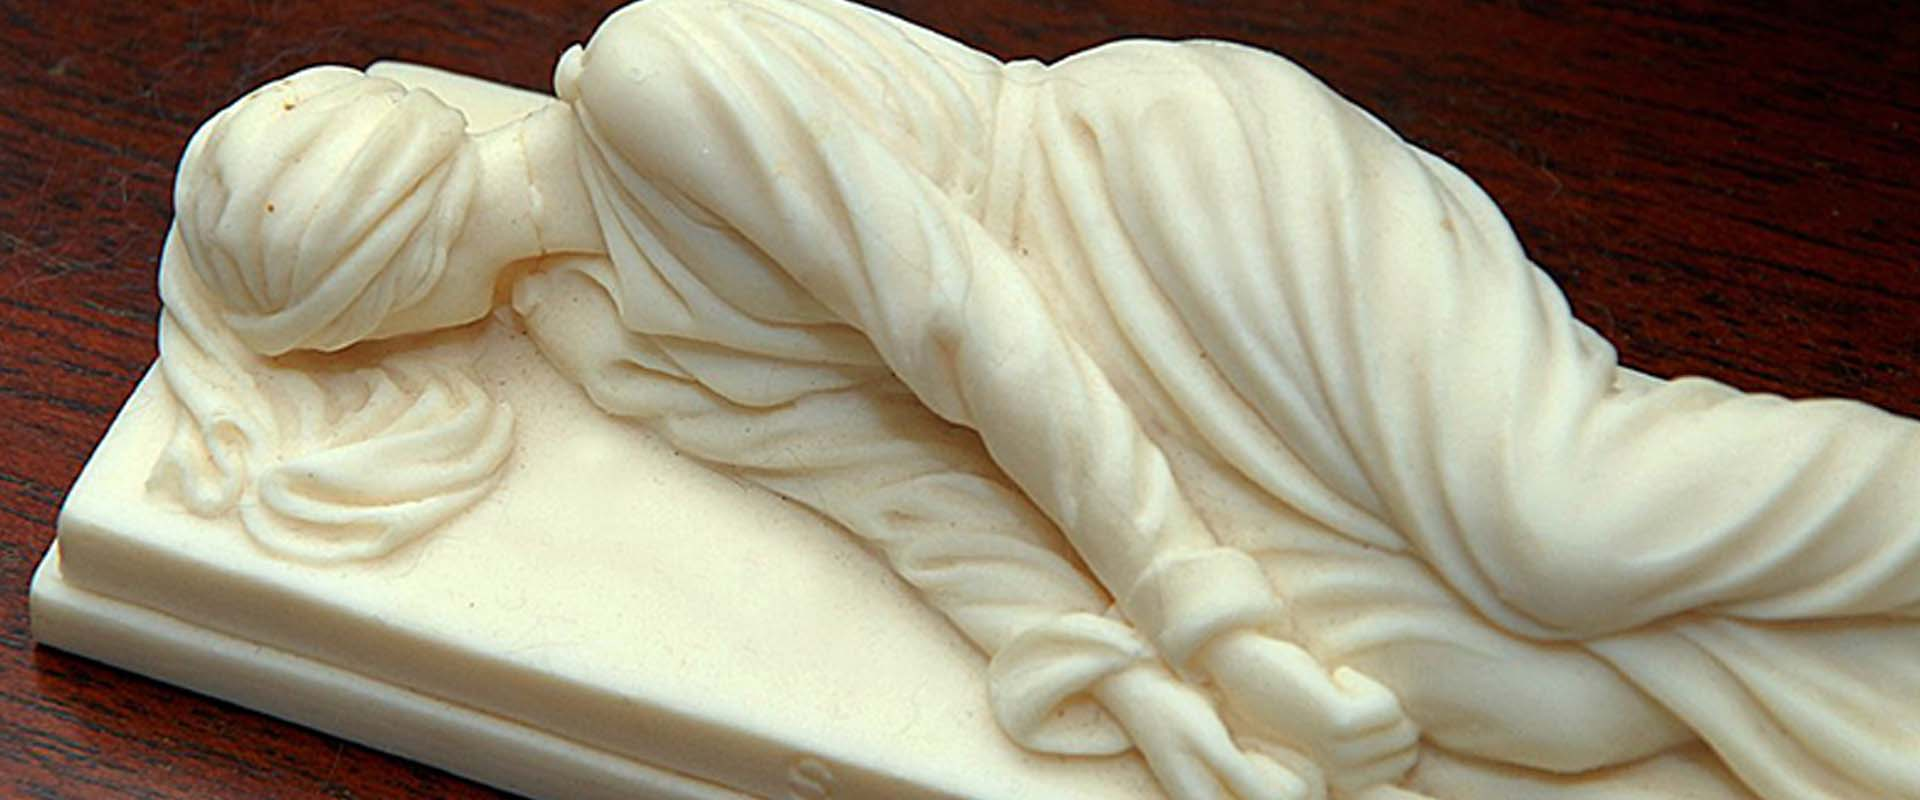 Saint of the Day for November 22 - Saint Cecilia